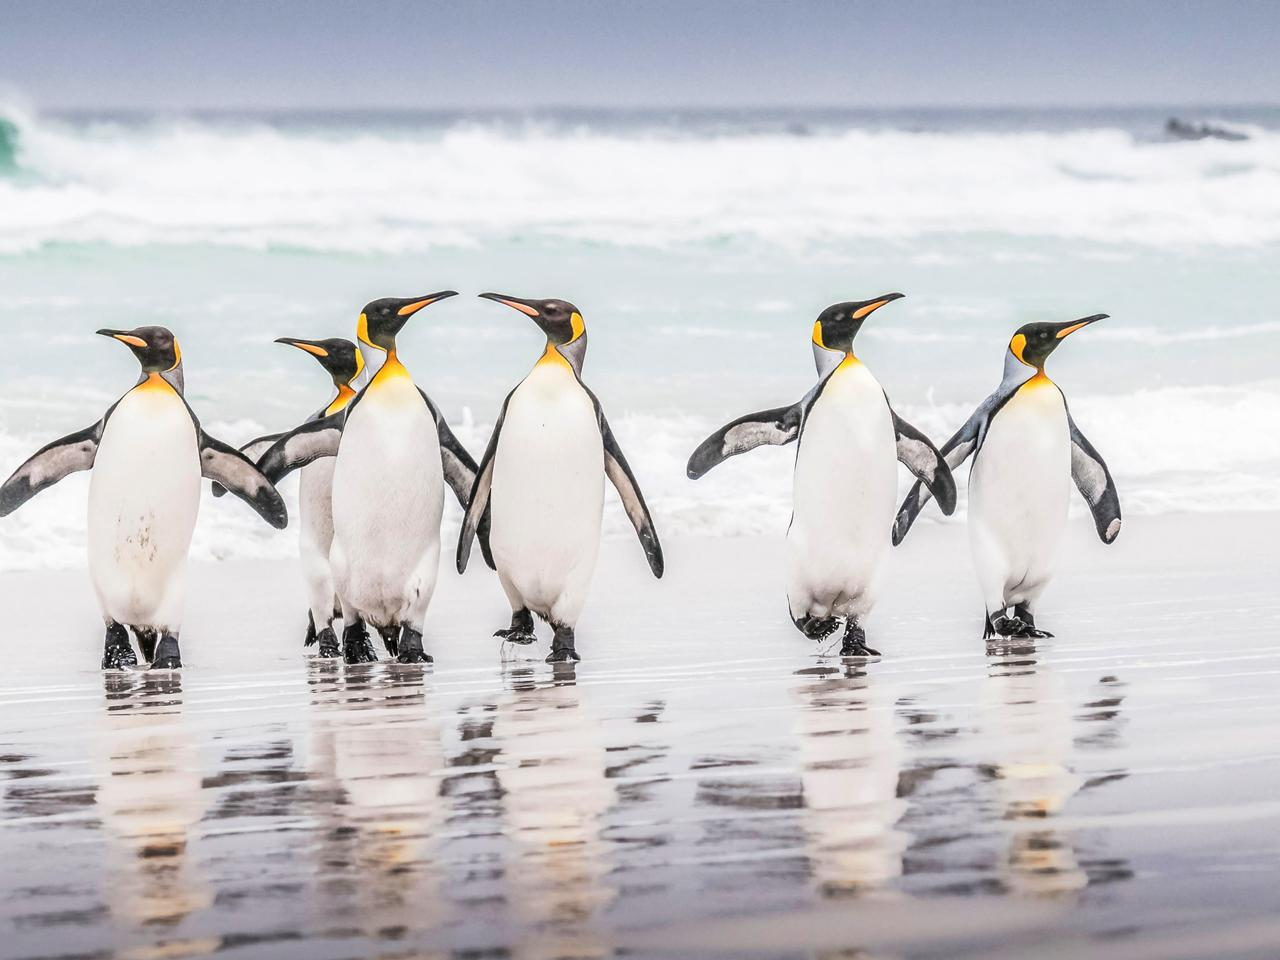 A waddle of King Penguins on the beach.